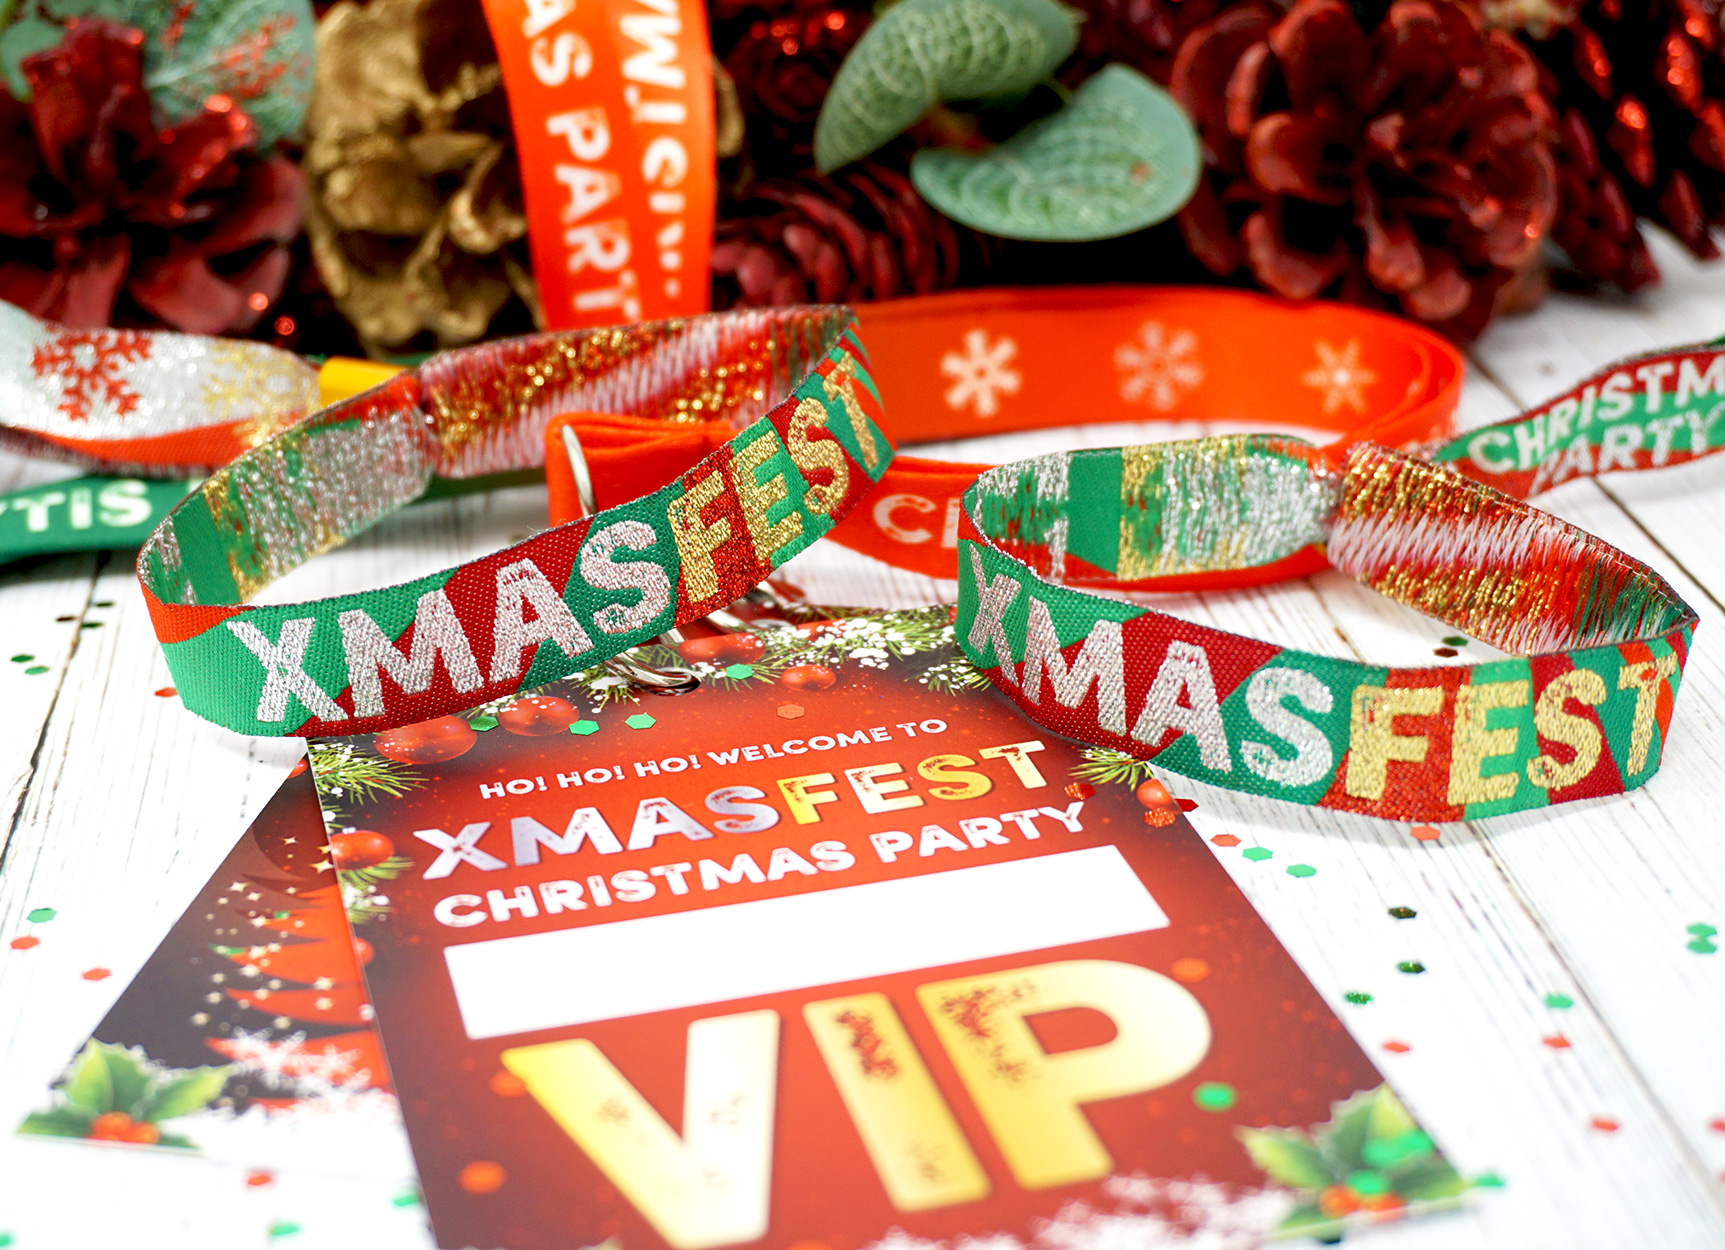 xmas fest festival theme christmas party at home lockdown office lanyards wristbands